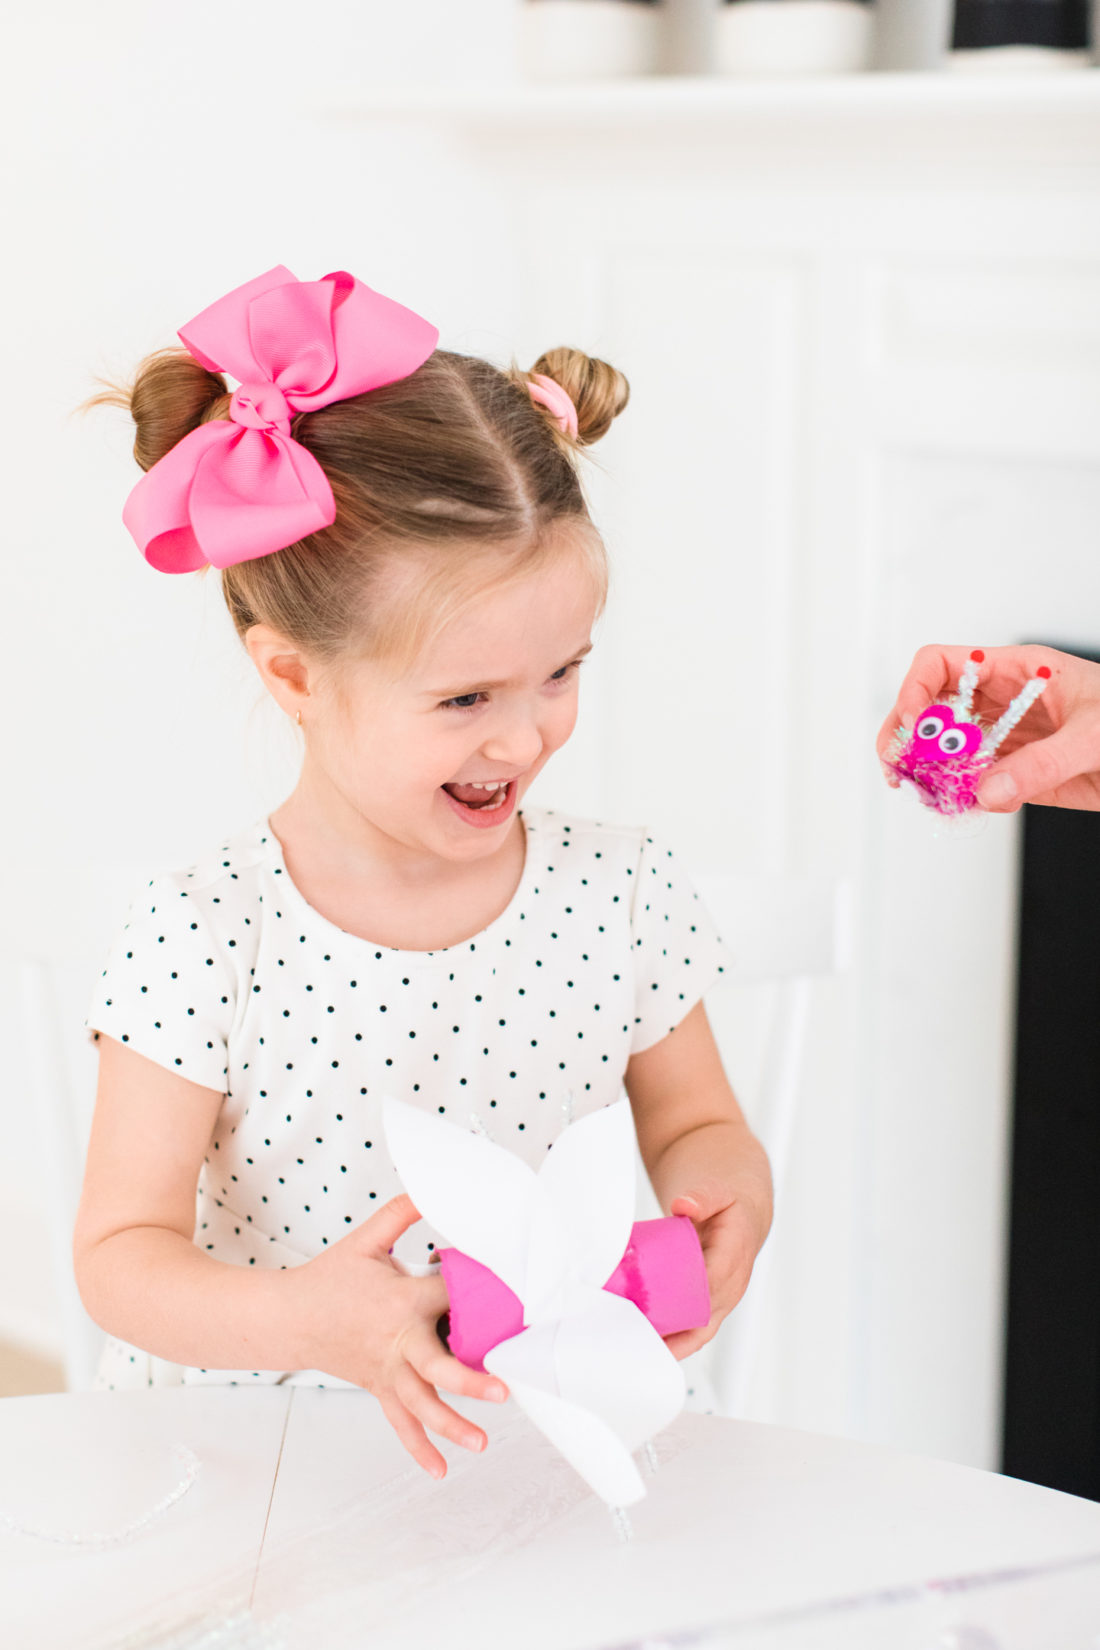 Marlowe Martino has fun crafting DIY Lovebugs for Valentine's Day at her kitchen table